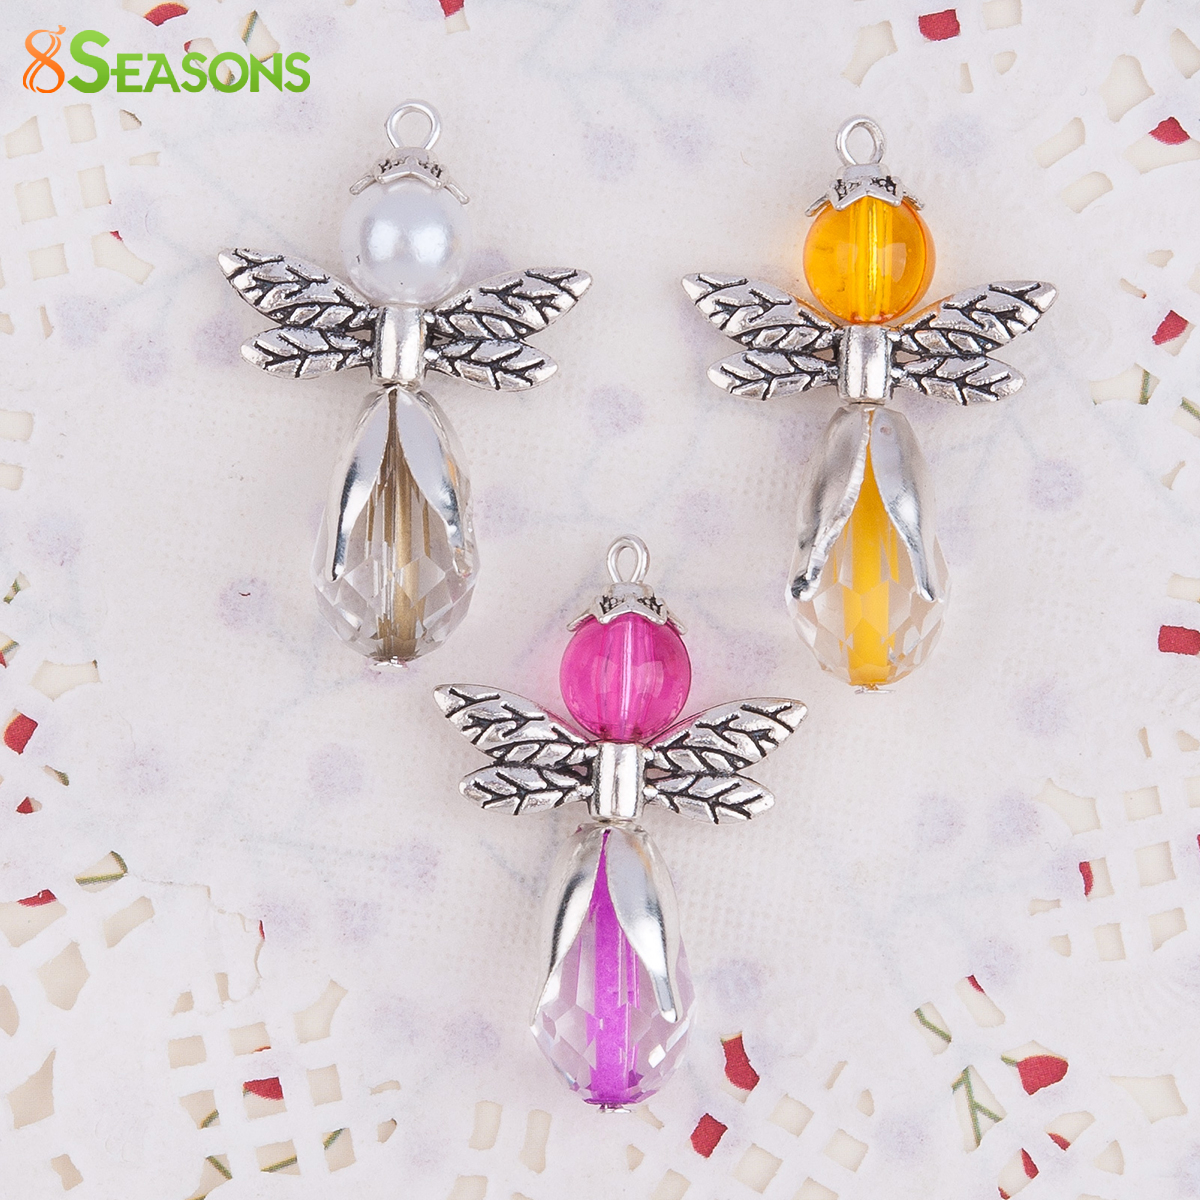 8SEASONS Guardian Angel Wing Pendants Angel Antique Silver With Glass Orange Fuchsia Beads White Acrylic imitation Pearl ,1 Set